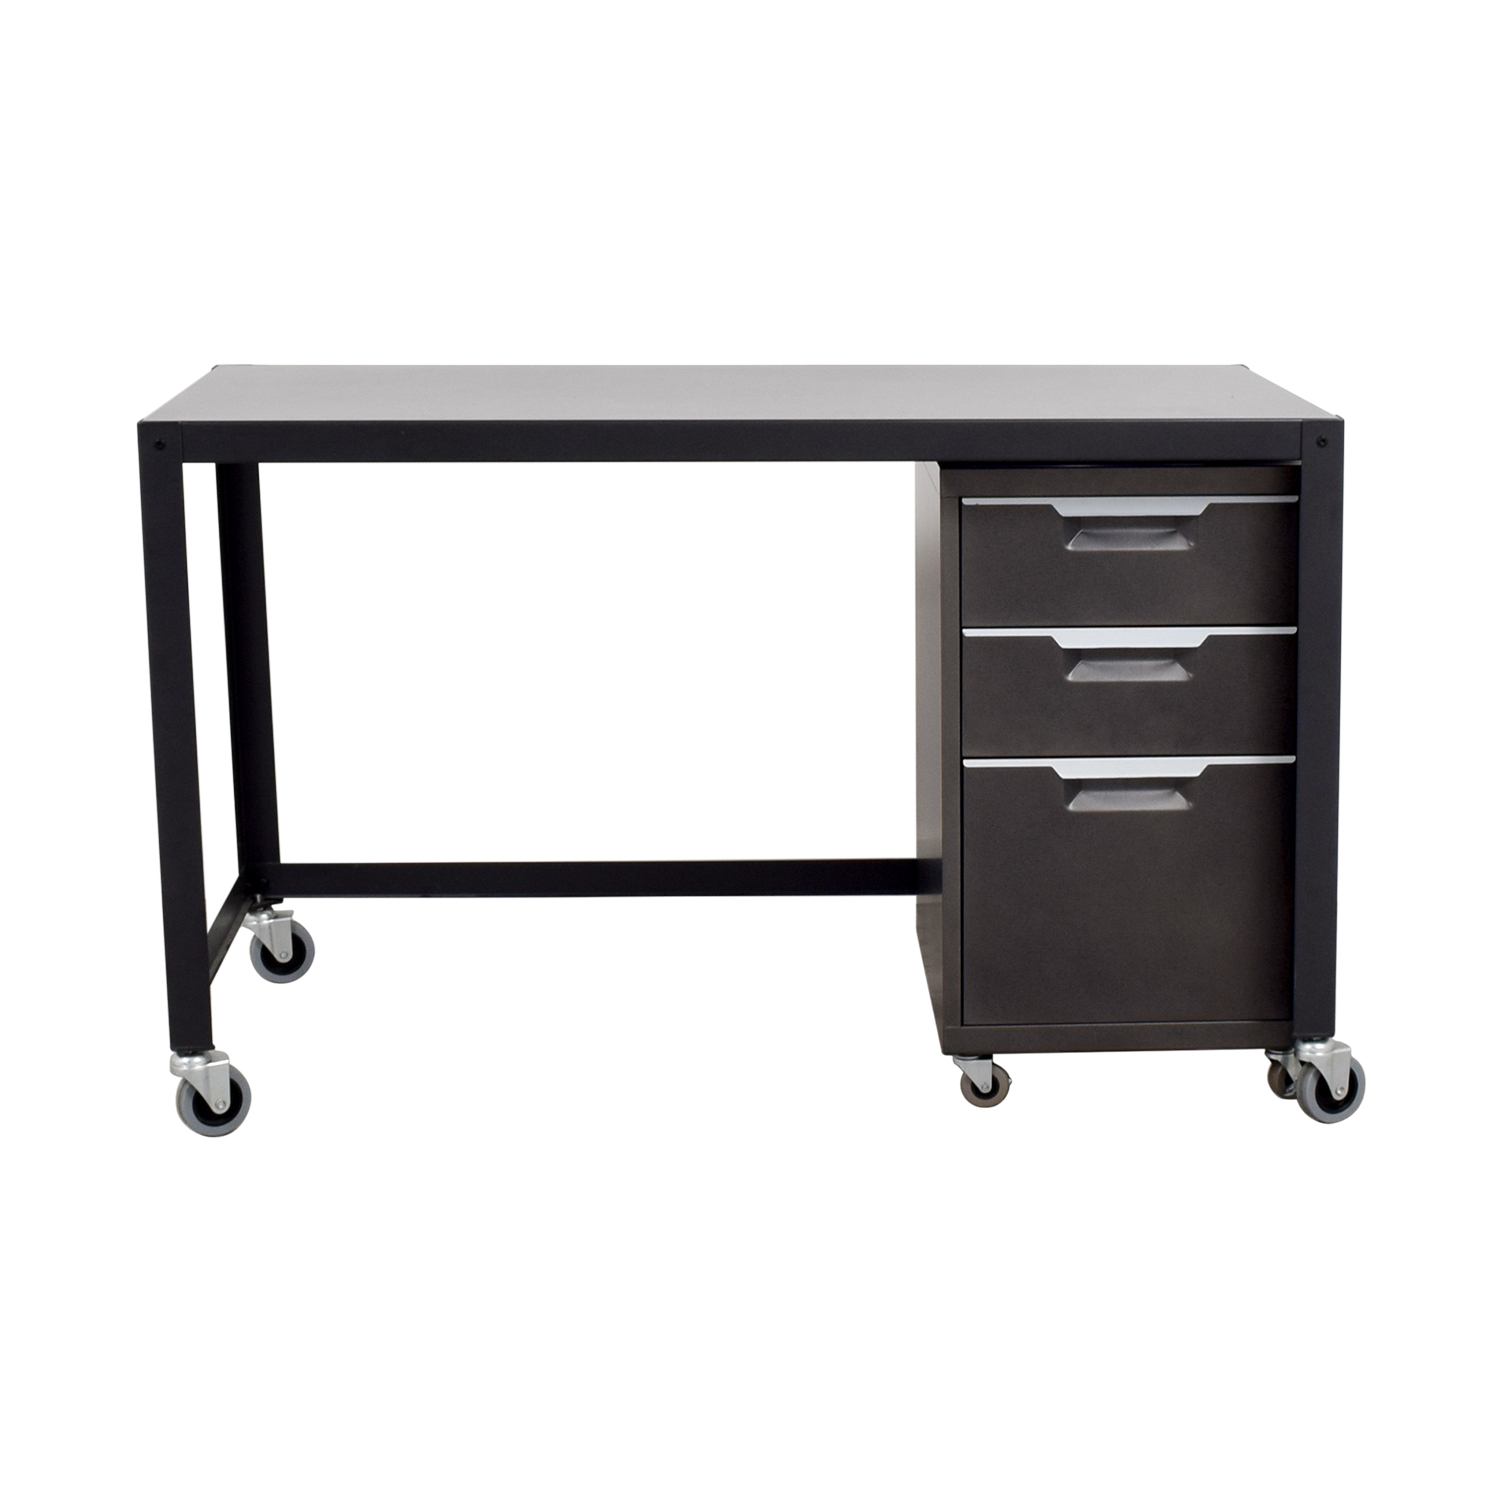 Metal Desk on Castors with Filing Cabinet / Home Office Desks